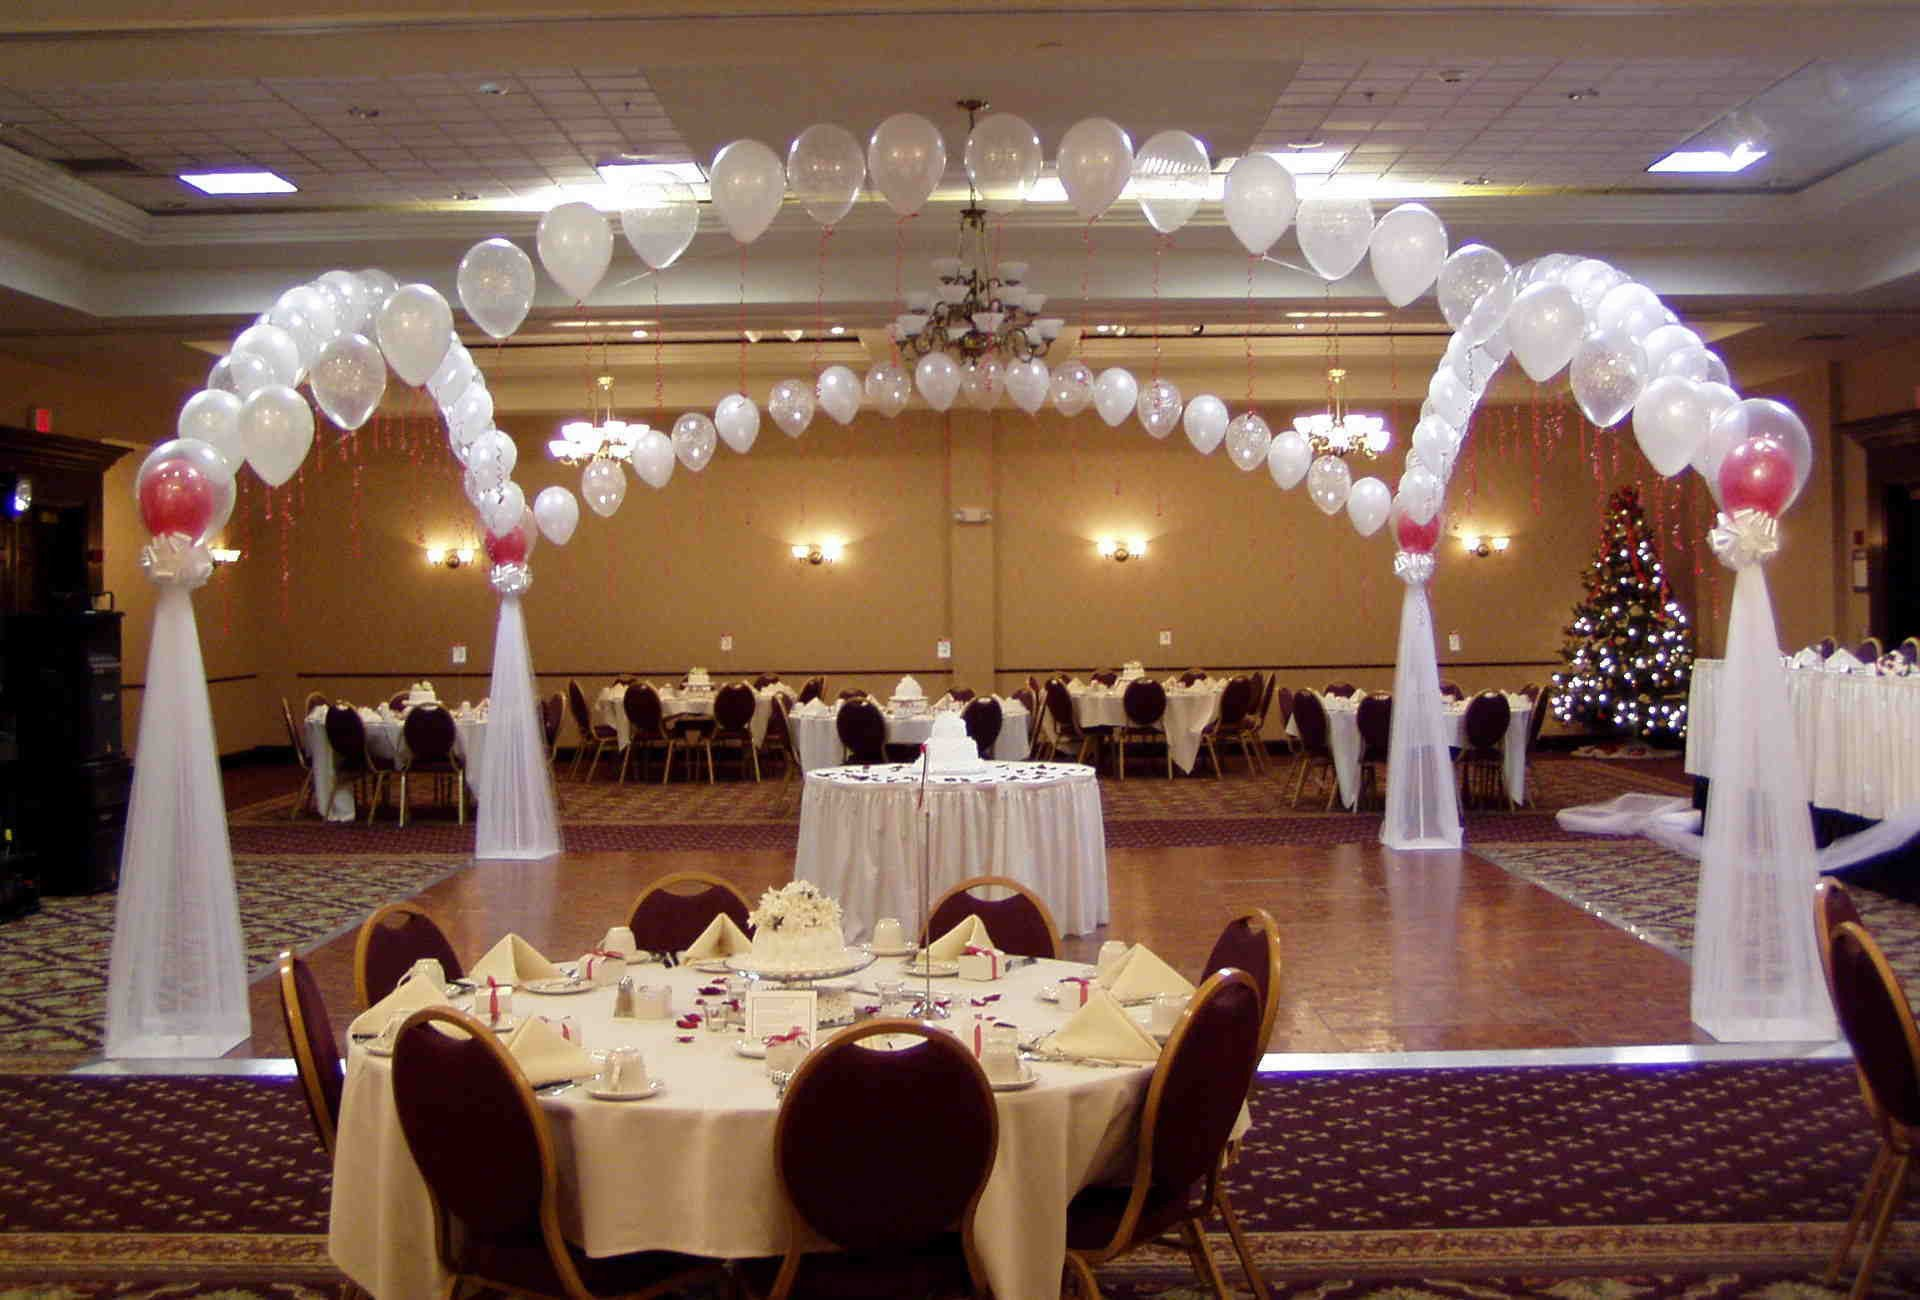 Decor Ideas for Wedding Reception New Weddings Decorations